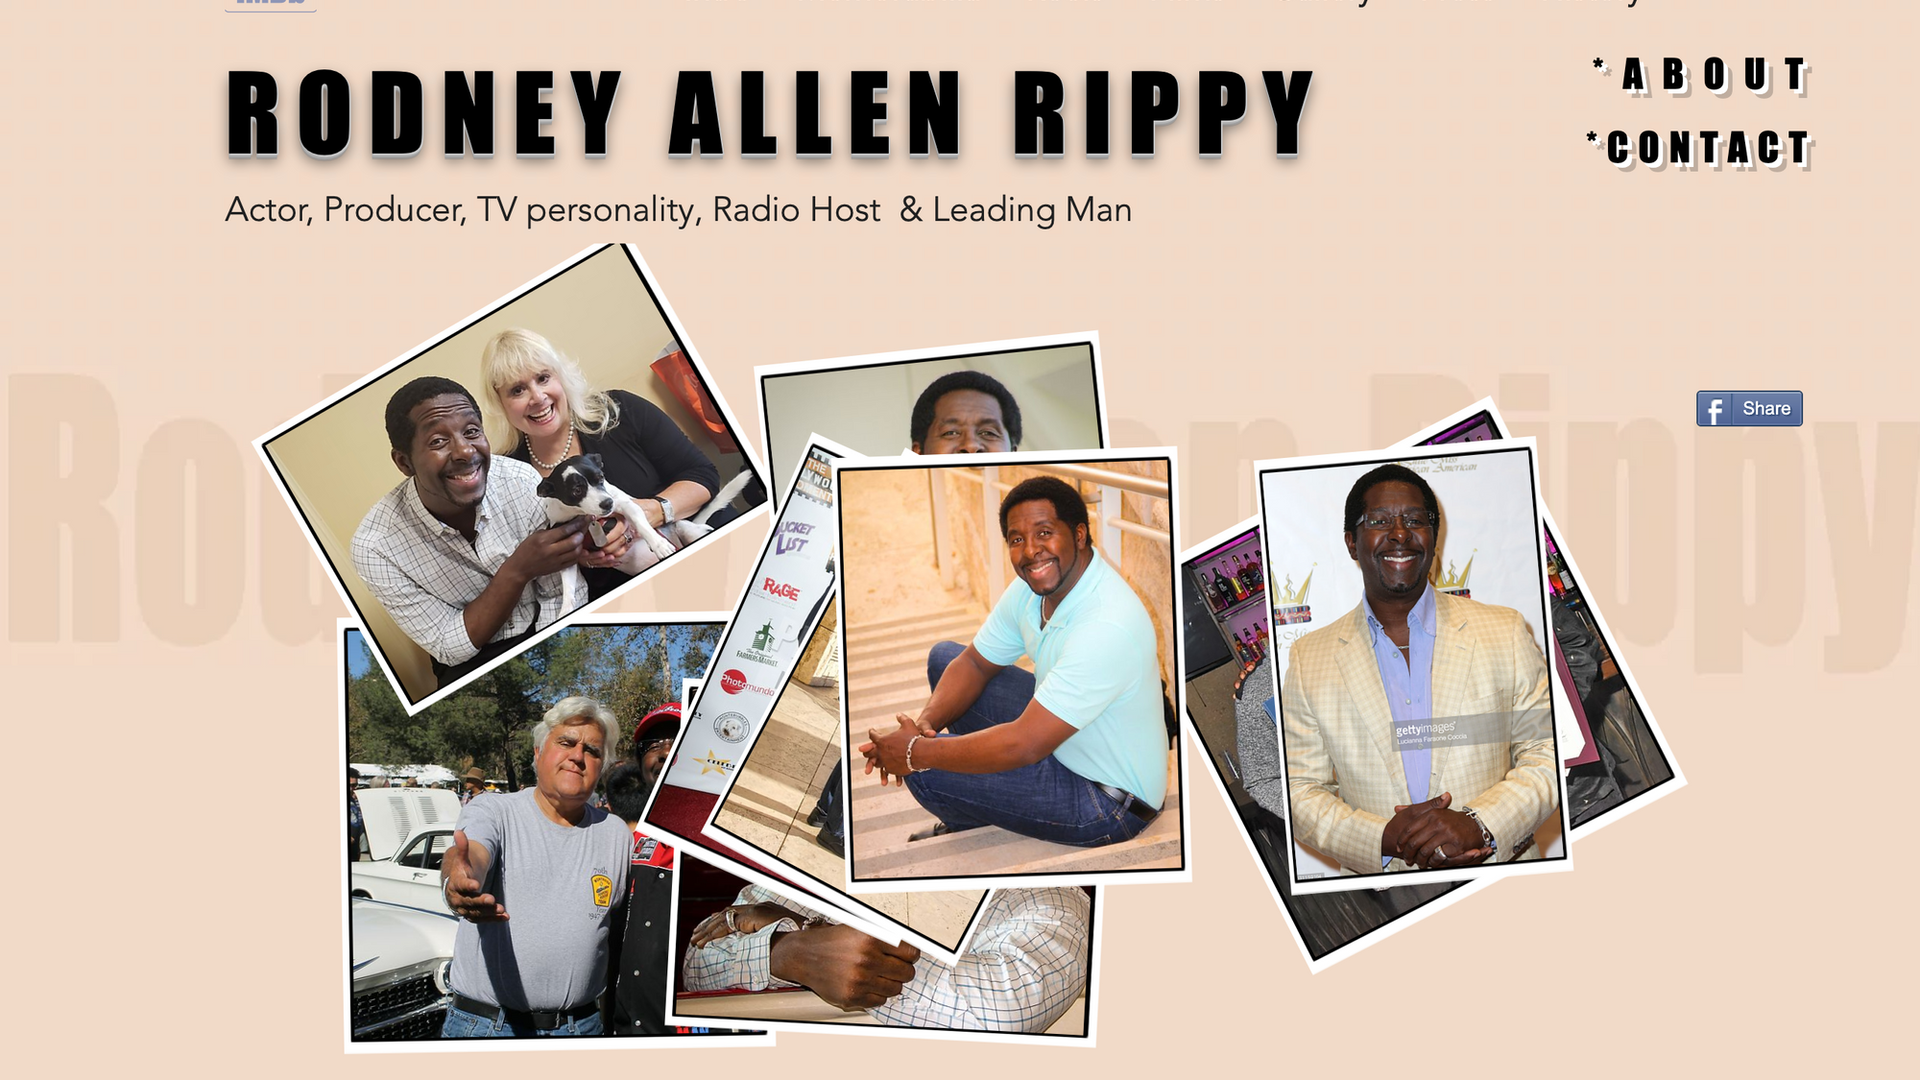 PROJECT:  Rodney Allen Rippy, official website